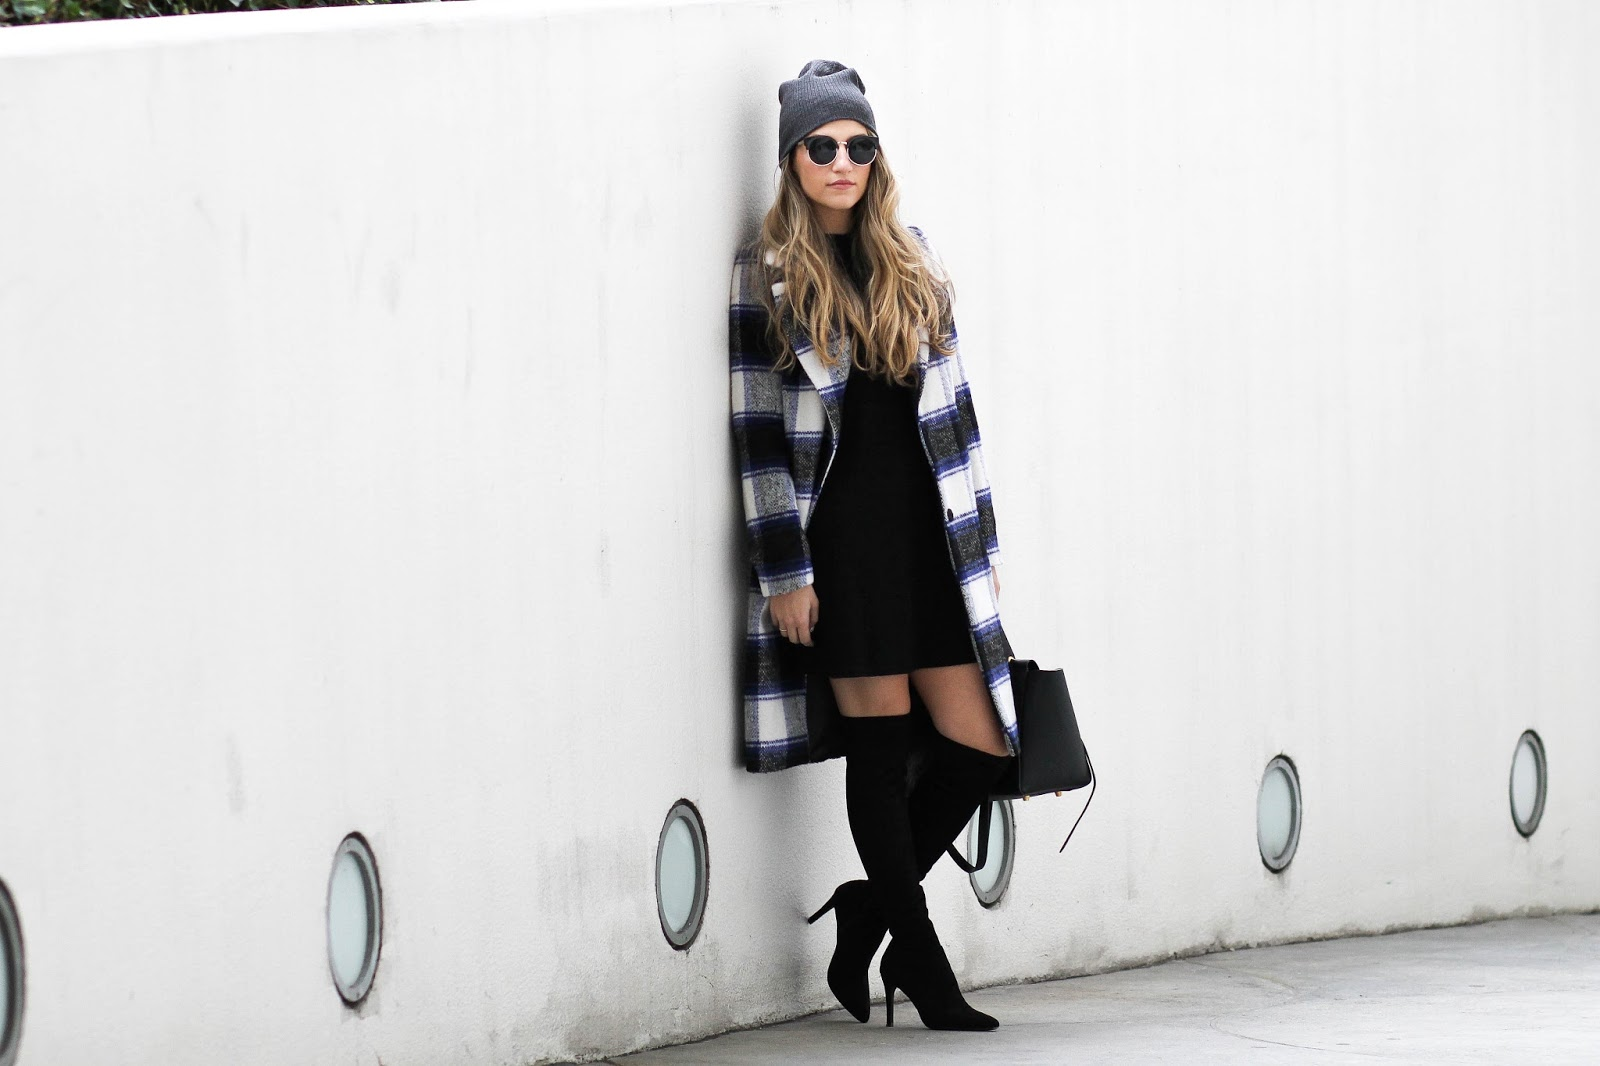 joie jemina boots, dressed for dreams